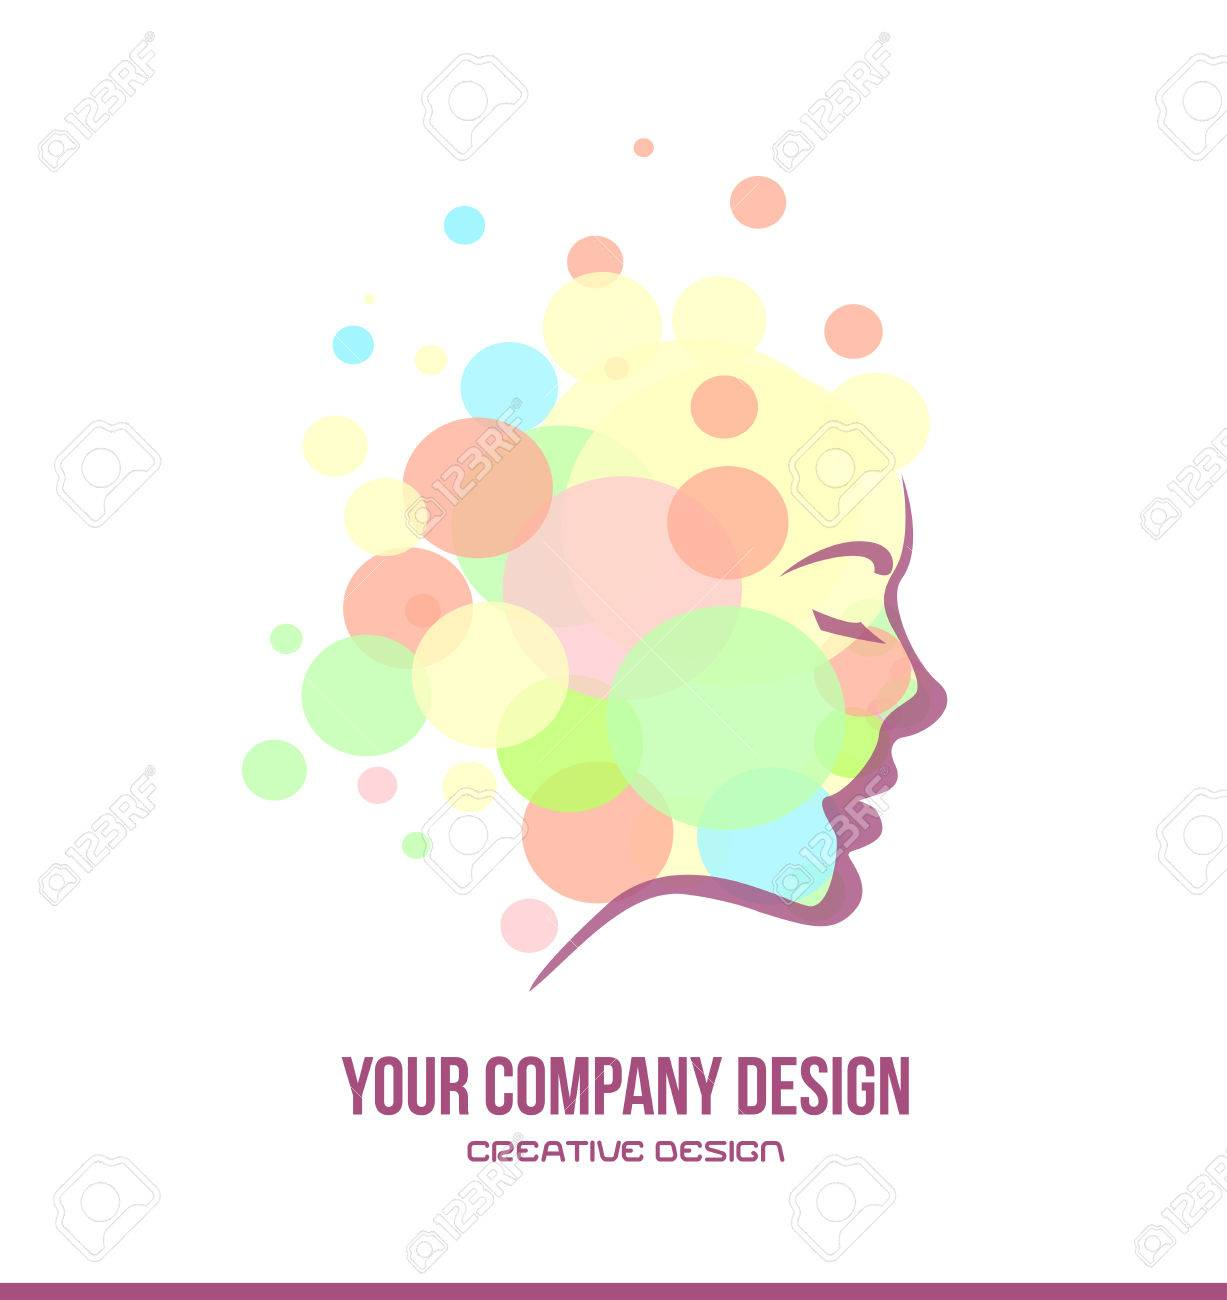 Vector Company Logo Icon Element Template Cosmetics Beauty Products Woman Face Contour Profile Bubble Stock